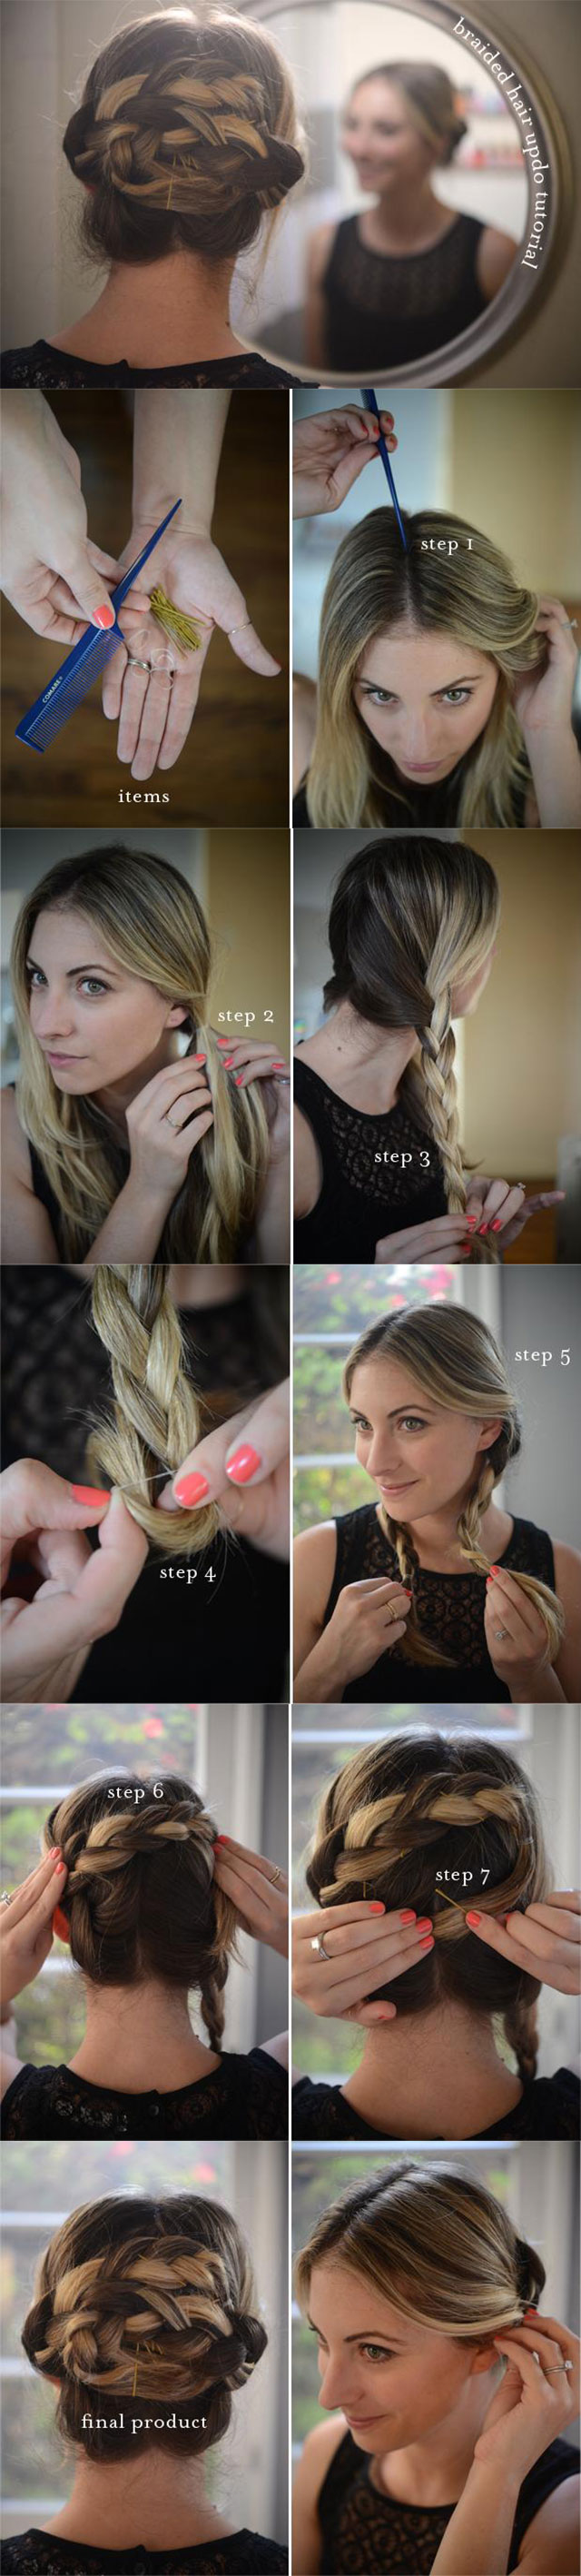 Braided-Hair-Updo-Tutorial